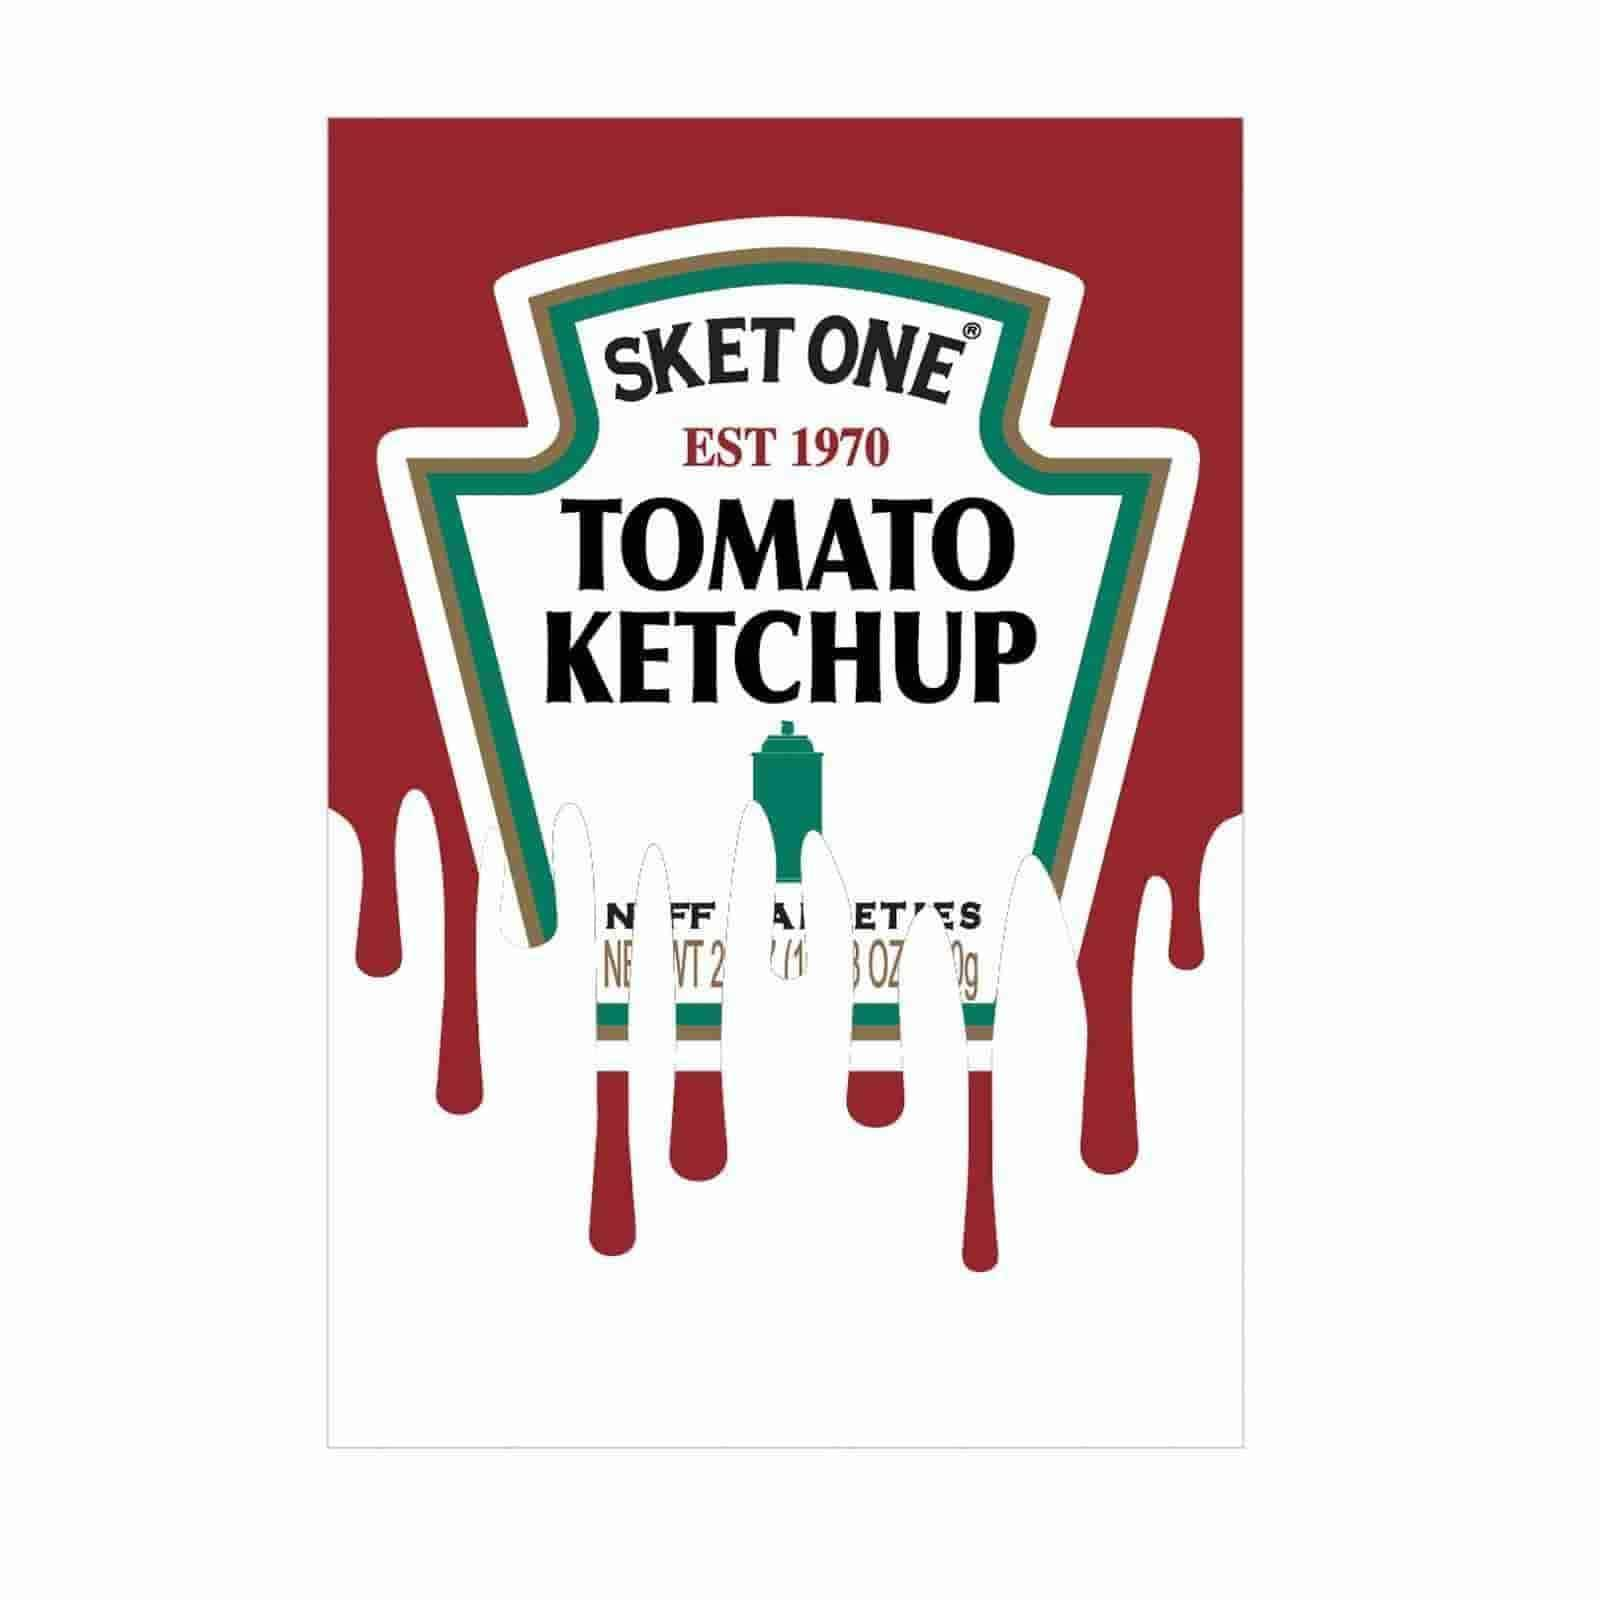 Sketchup Signed Art Print 19 x 13 by Sket-One - IamRetro.com